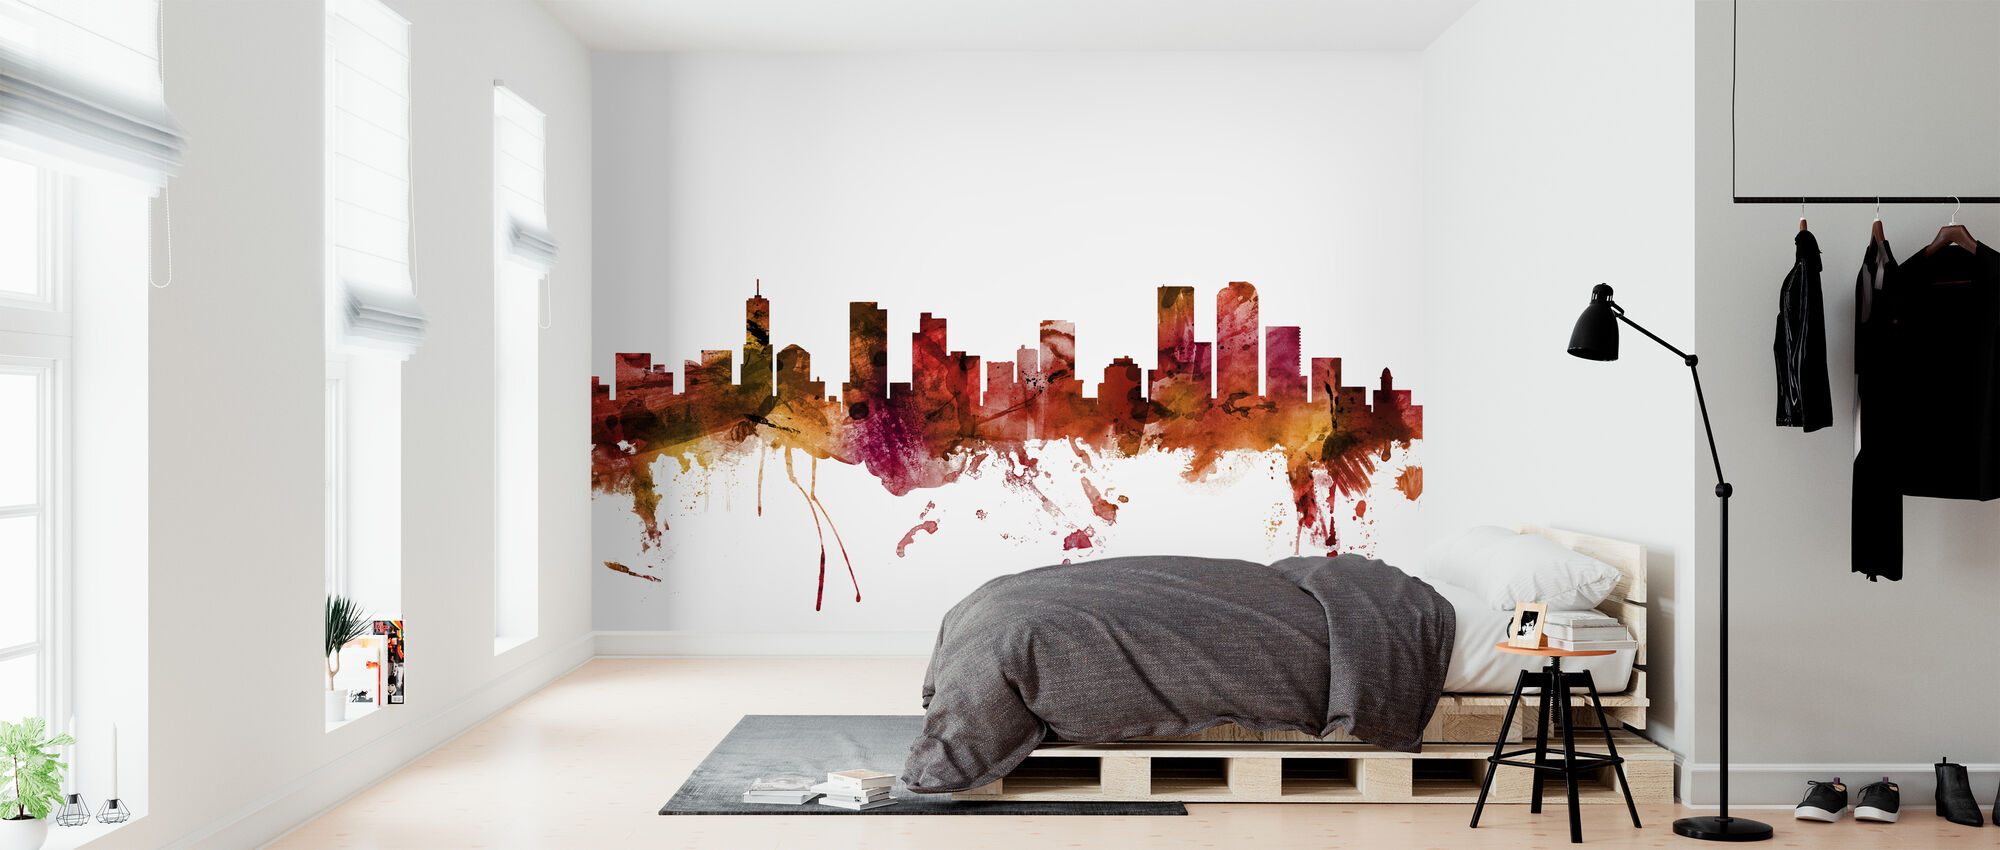 Denver Colorado Skyline - Wallpaper - Bedroom